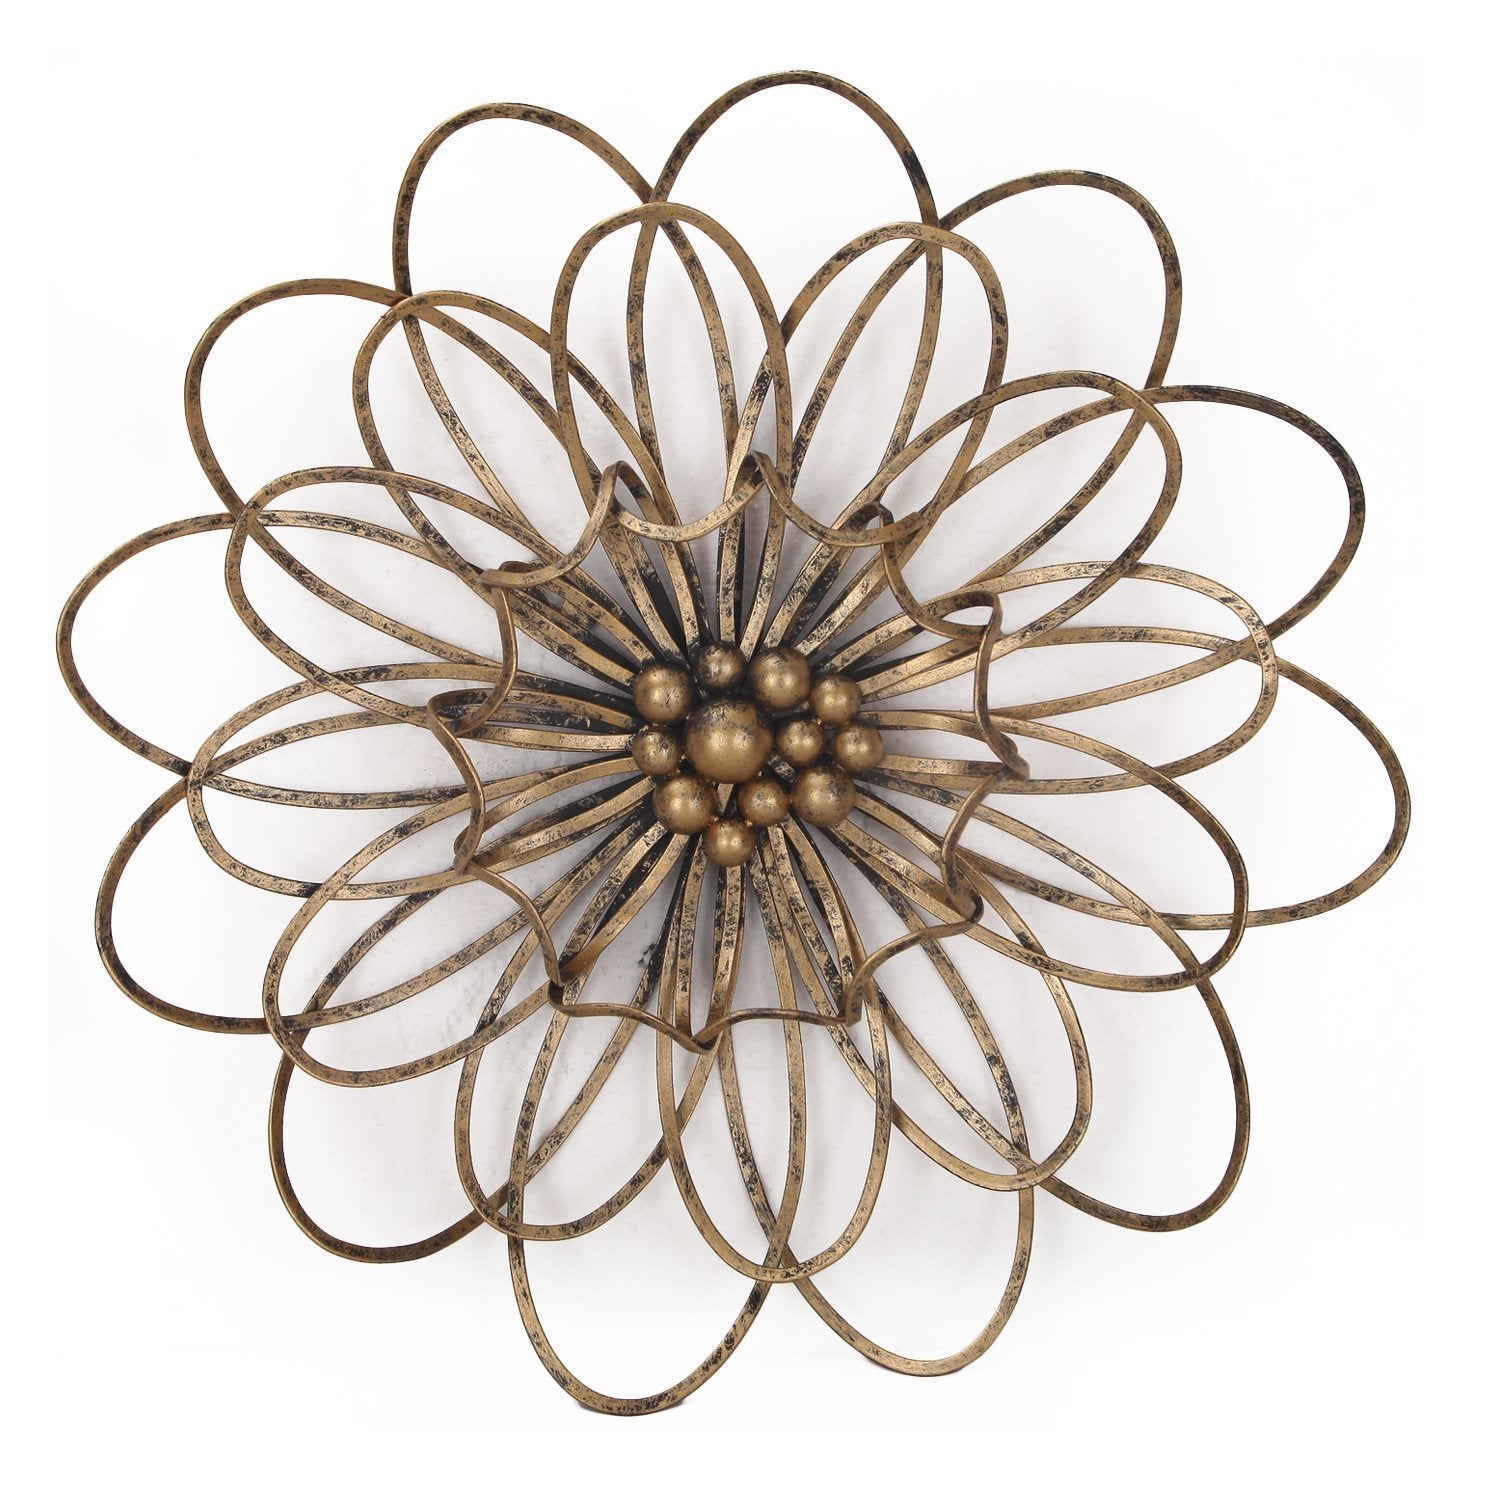 Flower Urban Design Metal Wall Decor within Flower Urban Design Metal Wall Decor (Image 16 of 30)